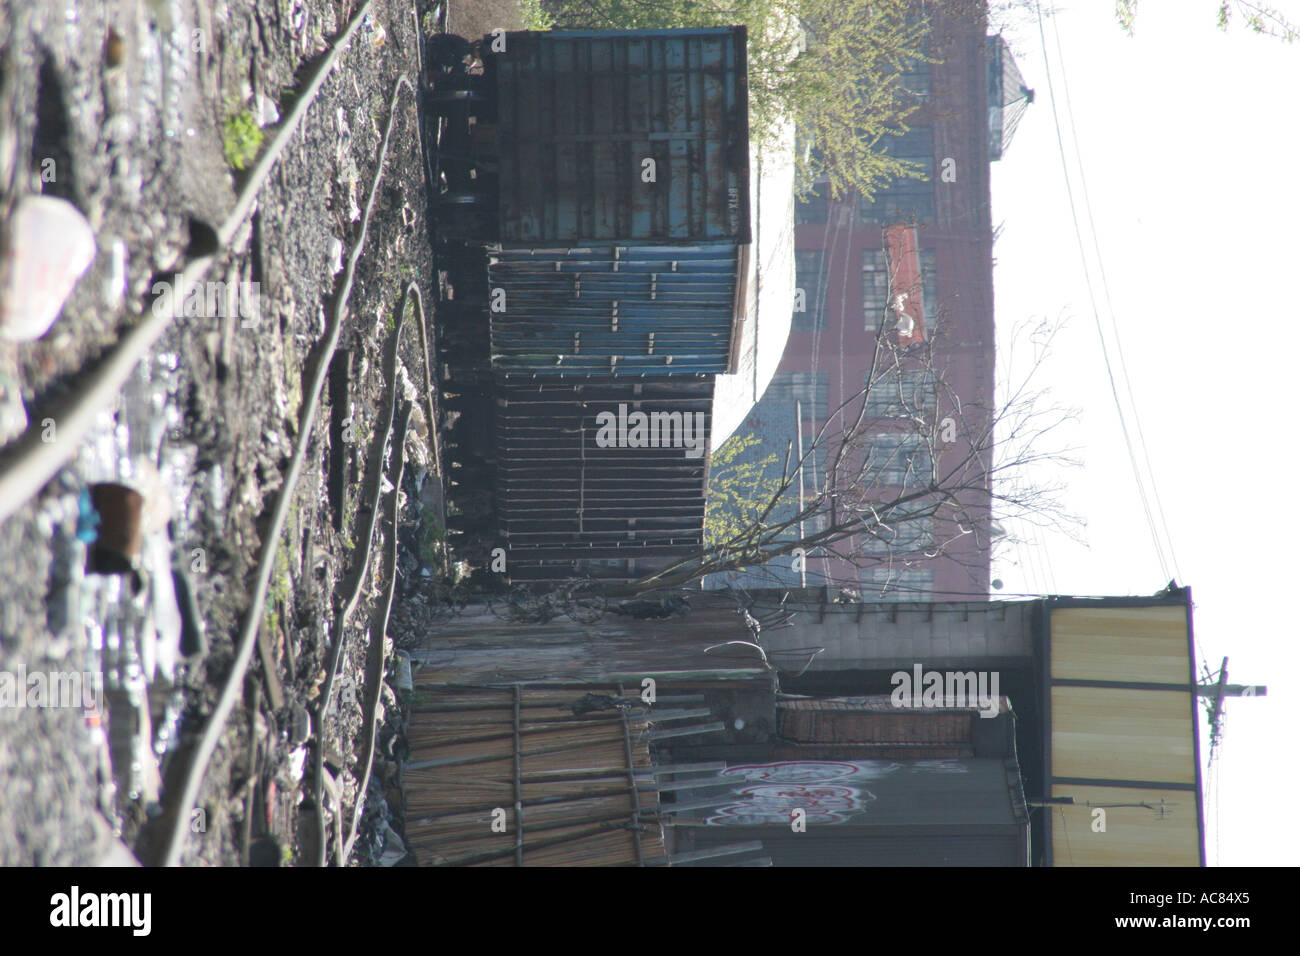 Train yard,abandon abandoned caboose container day dirt dirty disco volante filth garbage industrial metal outdoor - Stock Image